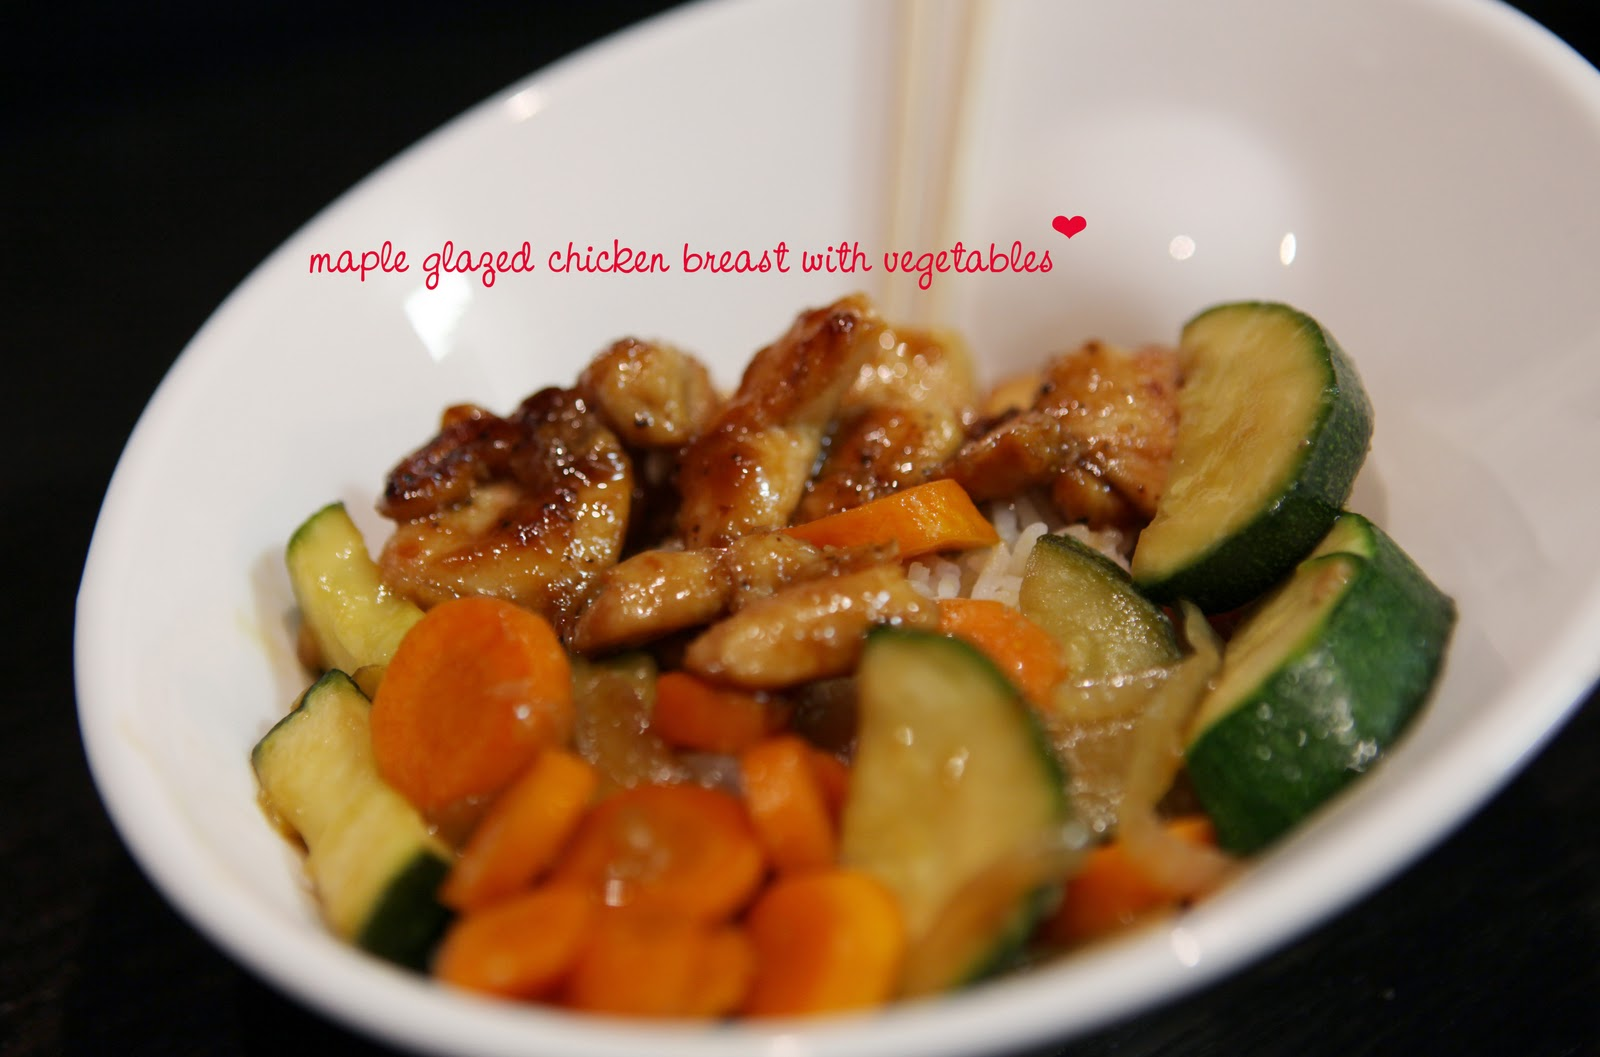 adrian and jana: maple-glazed chicken breast with vegetables